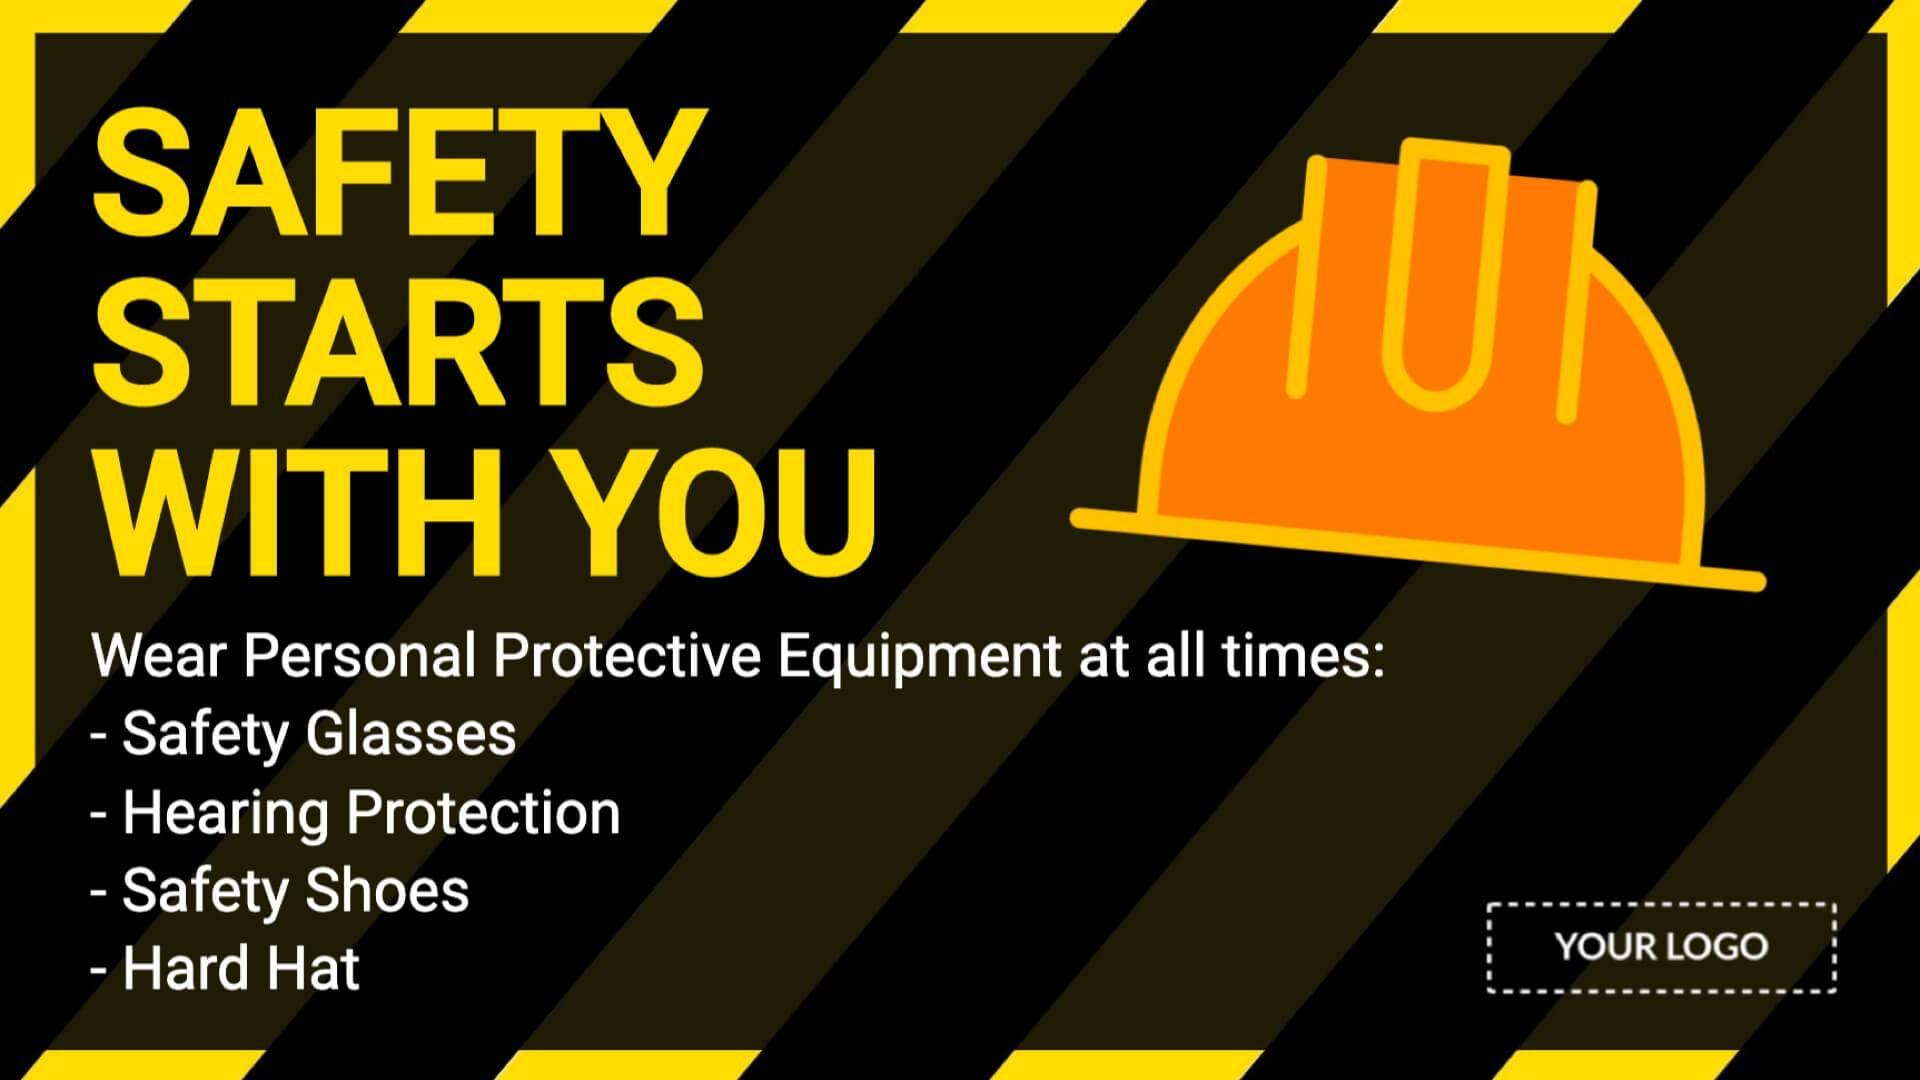 Campaign Safety First Digital Signage Template